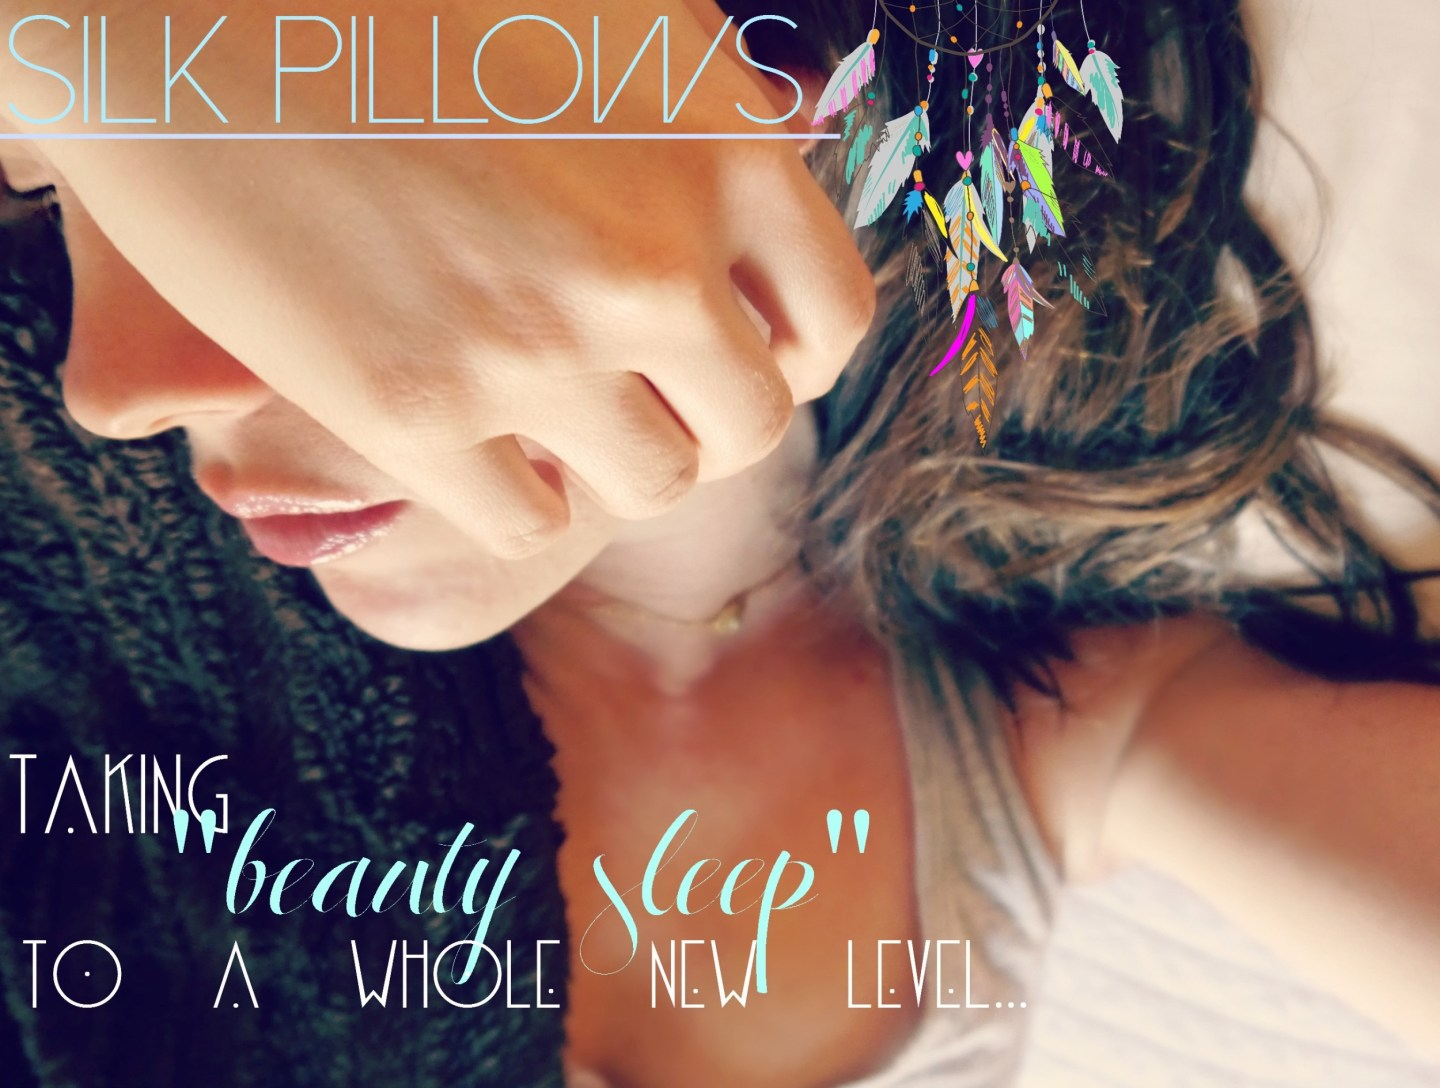 Silk Pillows and Skin Care